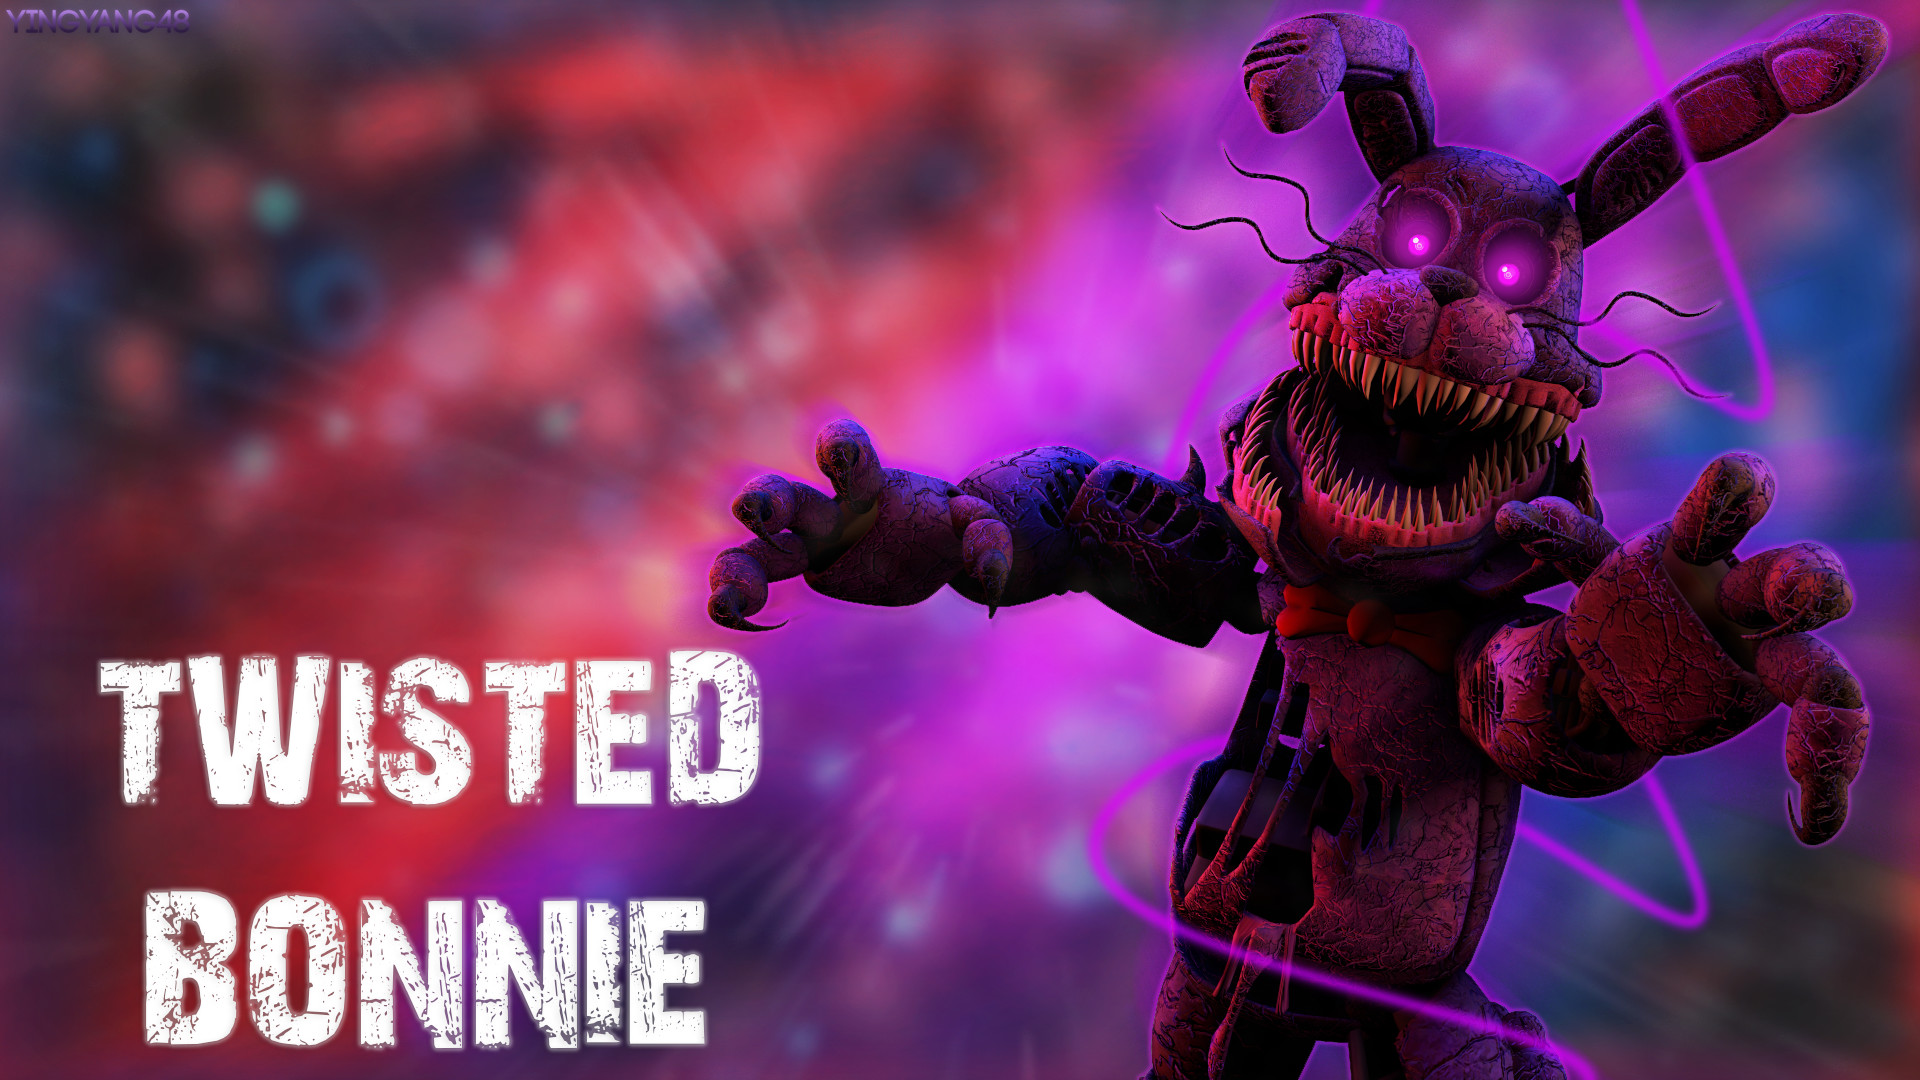 … Twisted Bonnie – Desktop Wallpaper by YingYang48